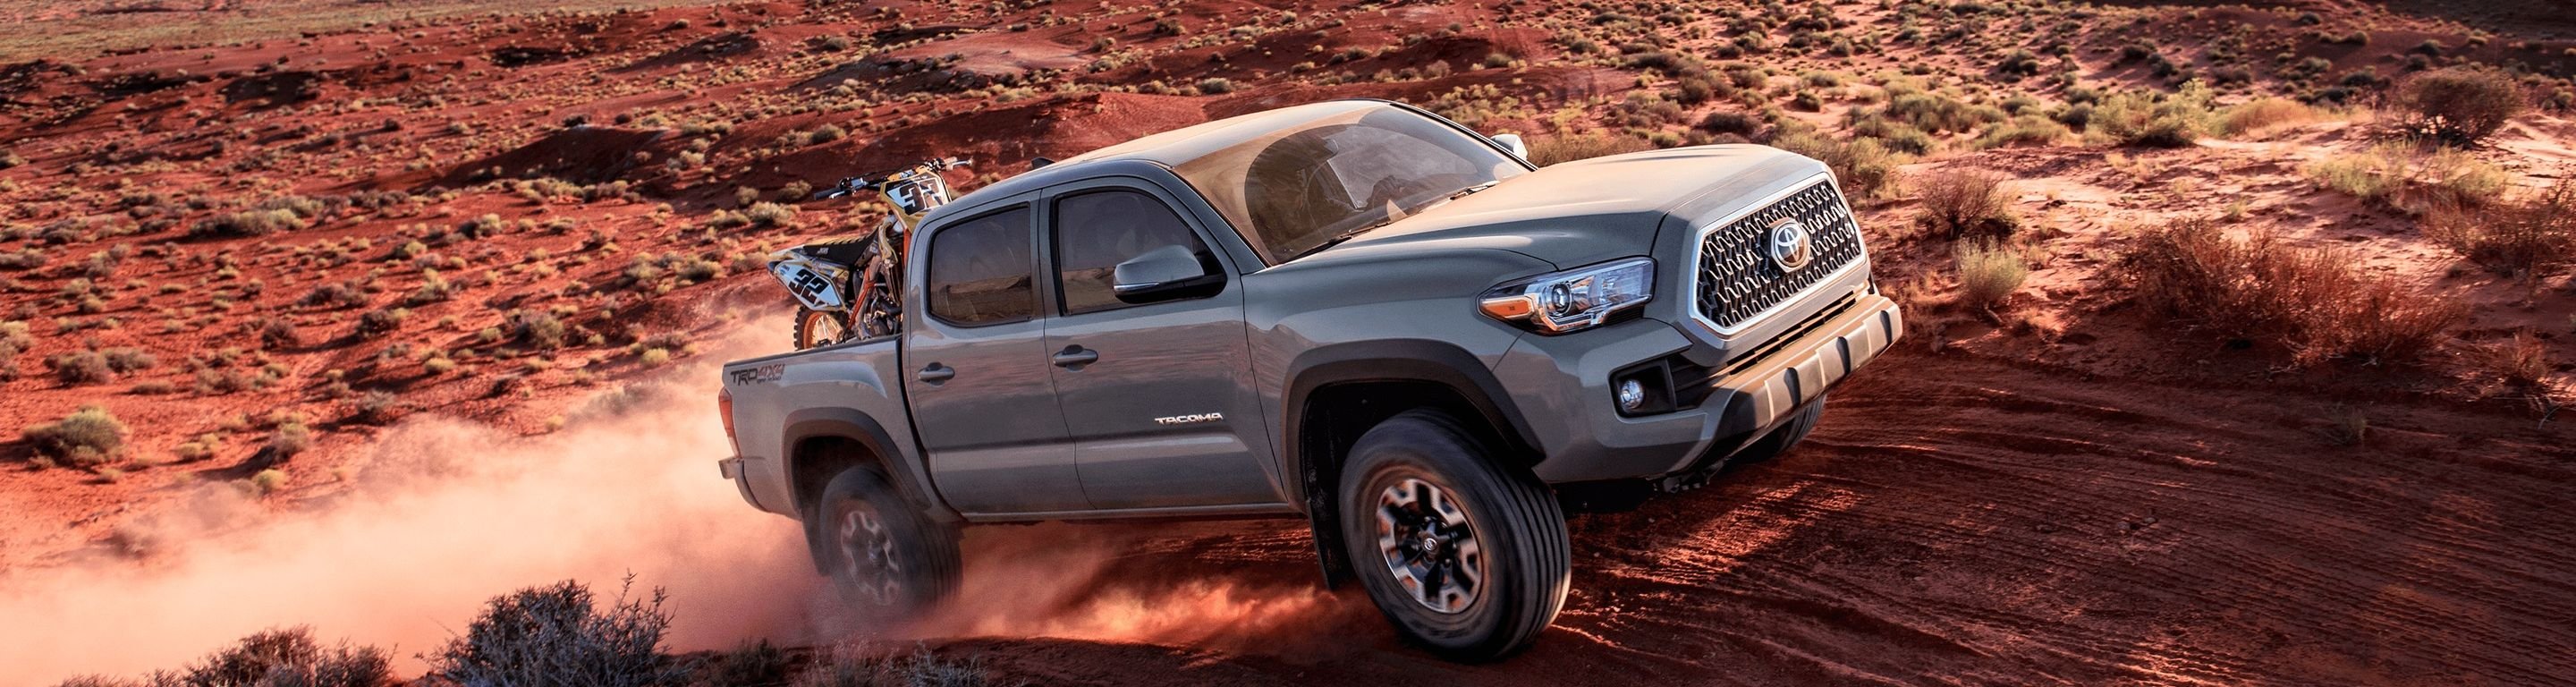 2019 Toyota Tacoma for Sale near Lee's Summit, MO